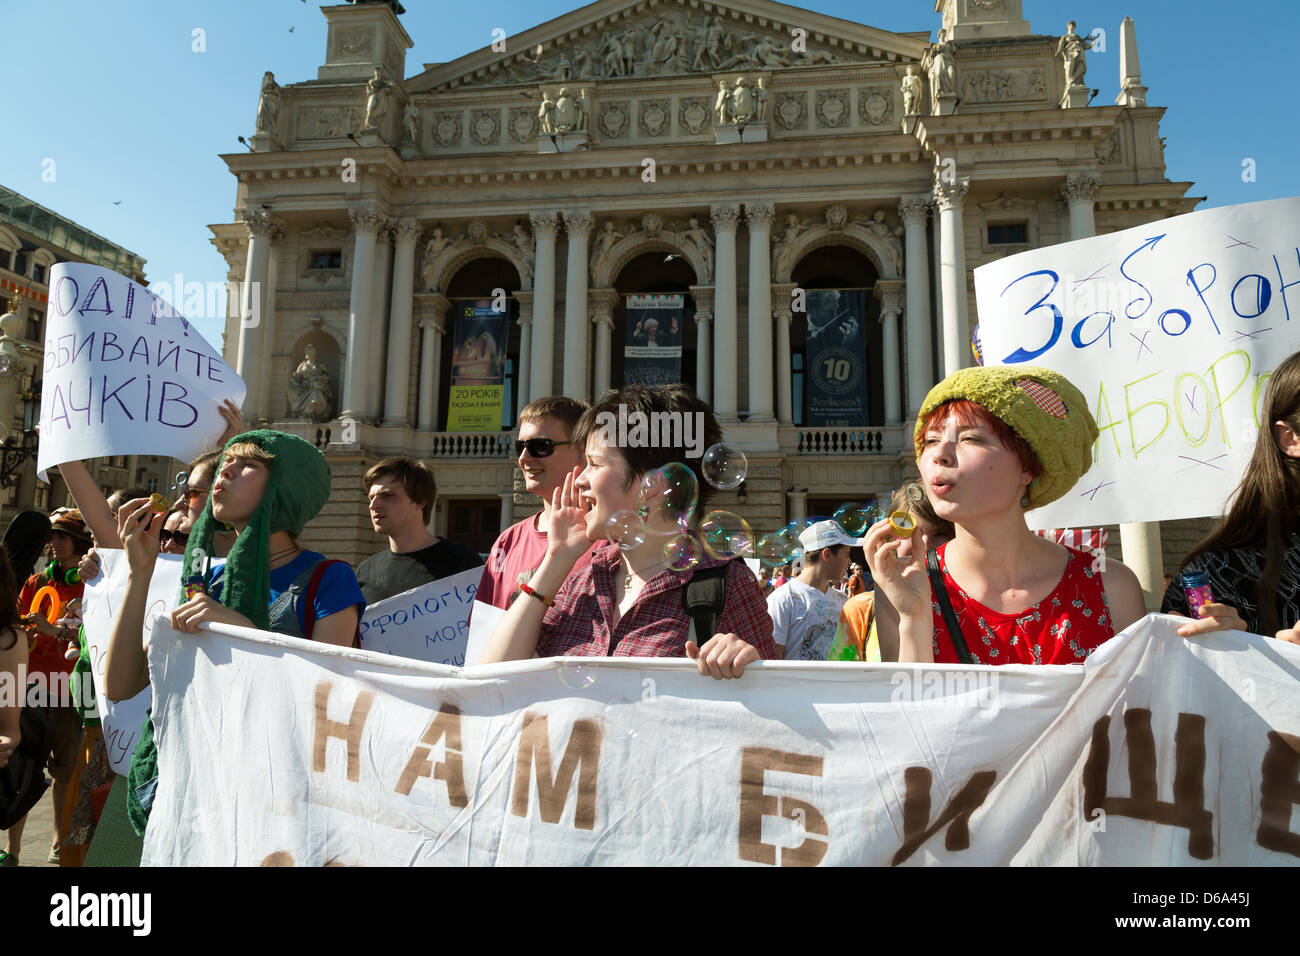 Lviv, Ukraine, young people satirize with absurd nonsense slogans policy - Stock Image